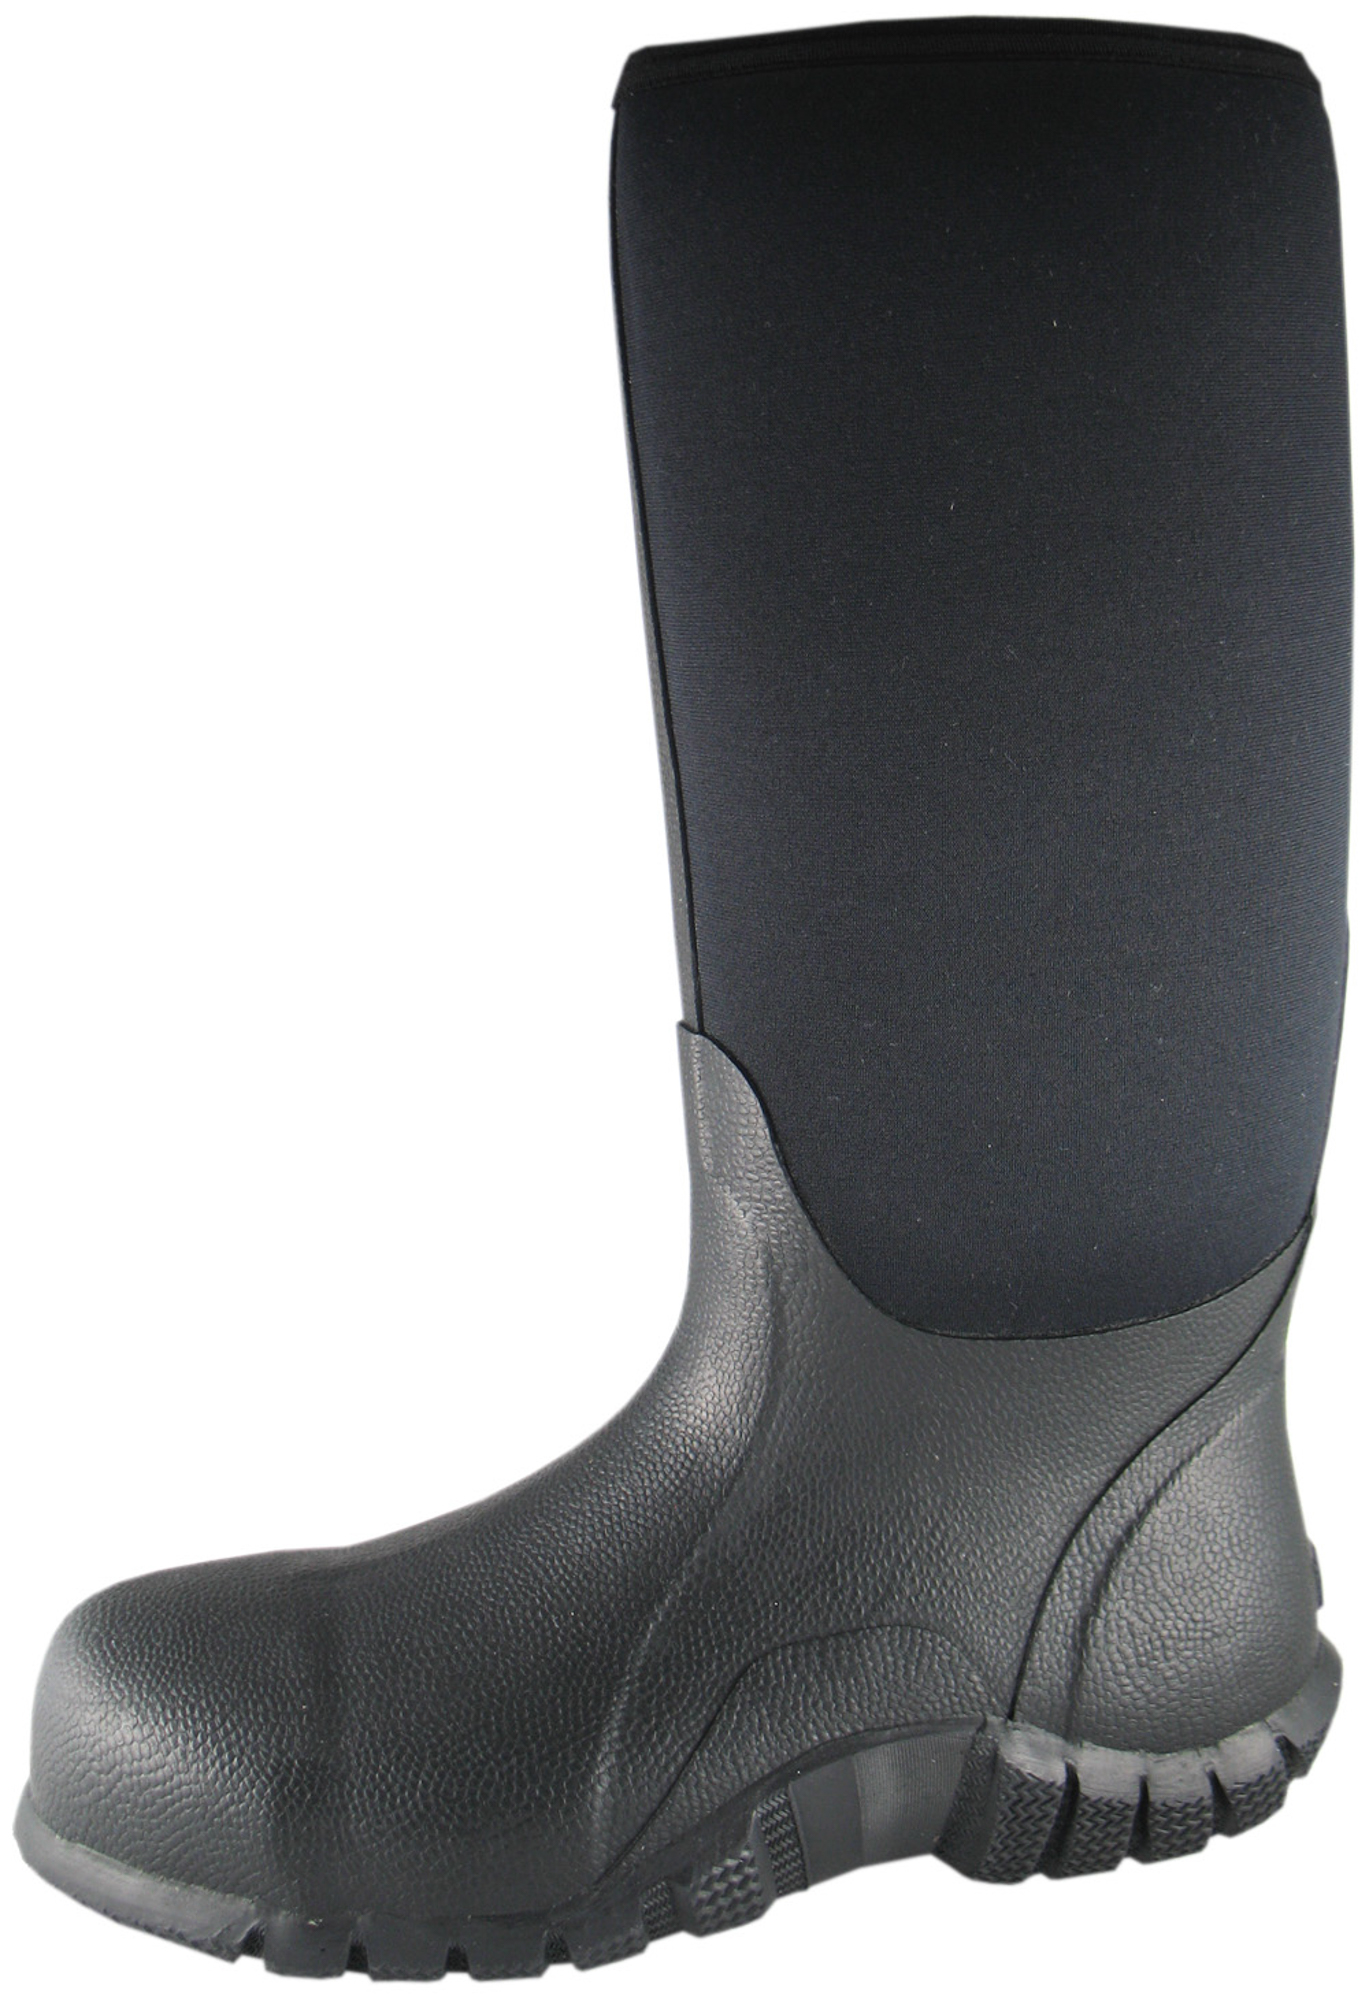 smoky mountain boots mens safety hibian black rubber